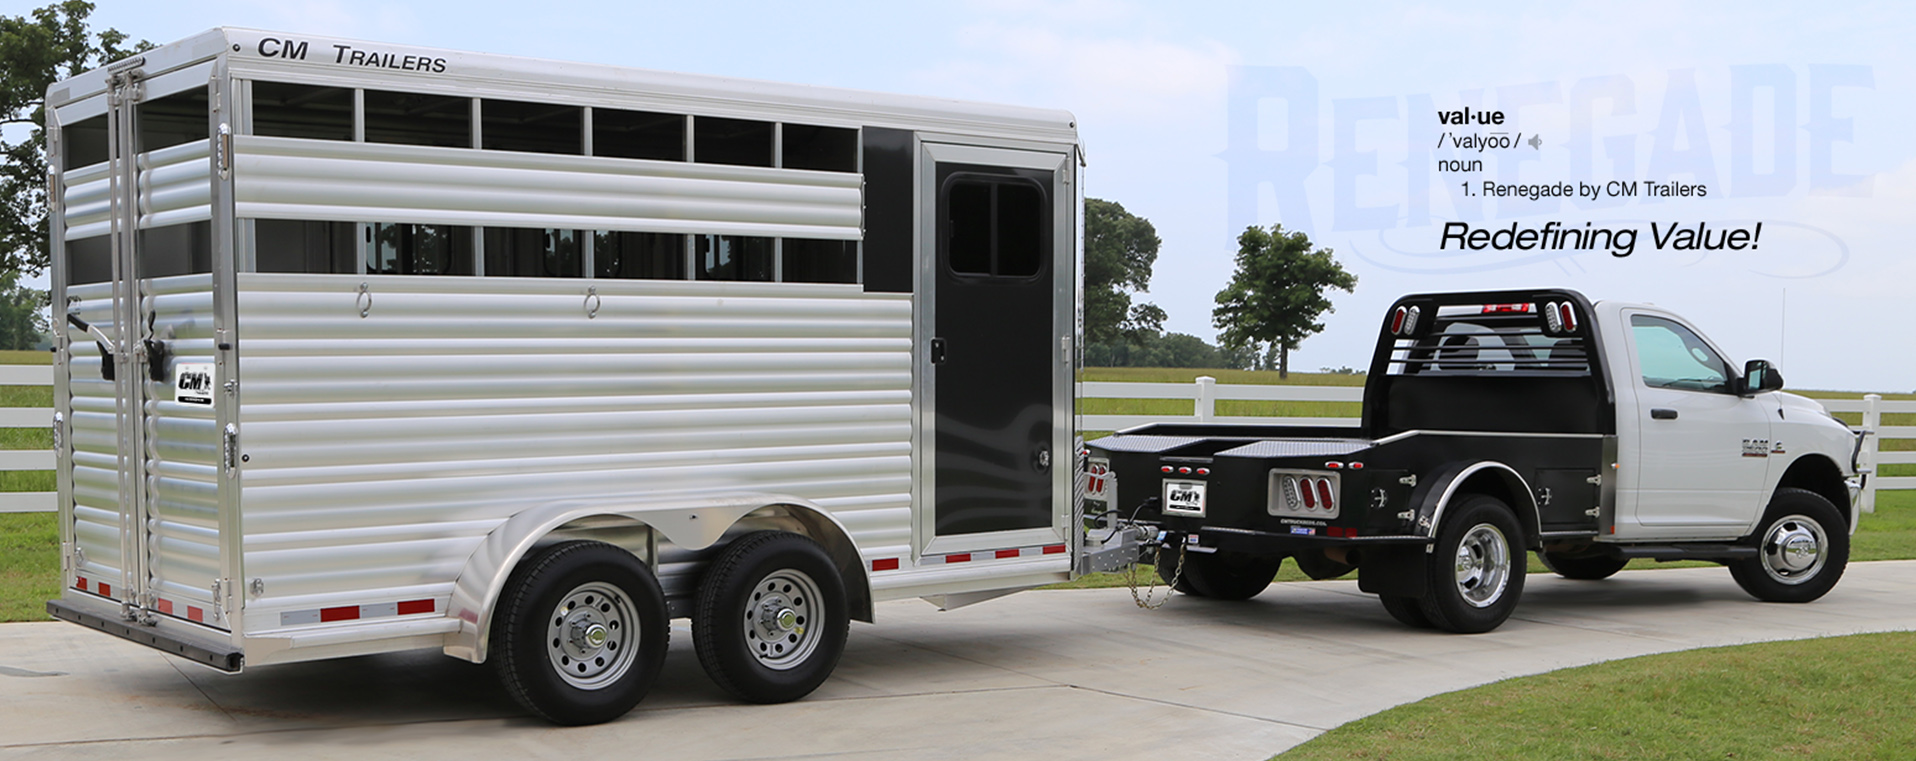 Cm Trailers All Aluminum Steel Horse Livestock Cargo Used Gooseneck Wiring Harness On Boxes